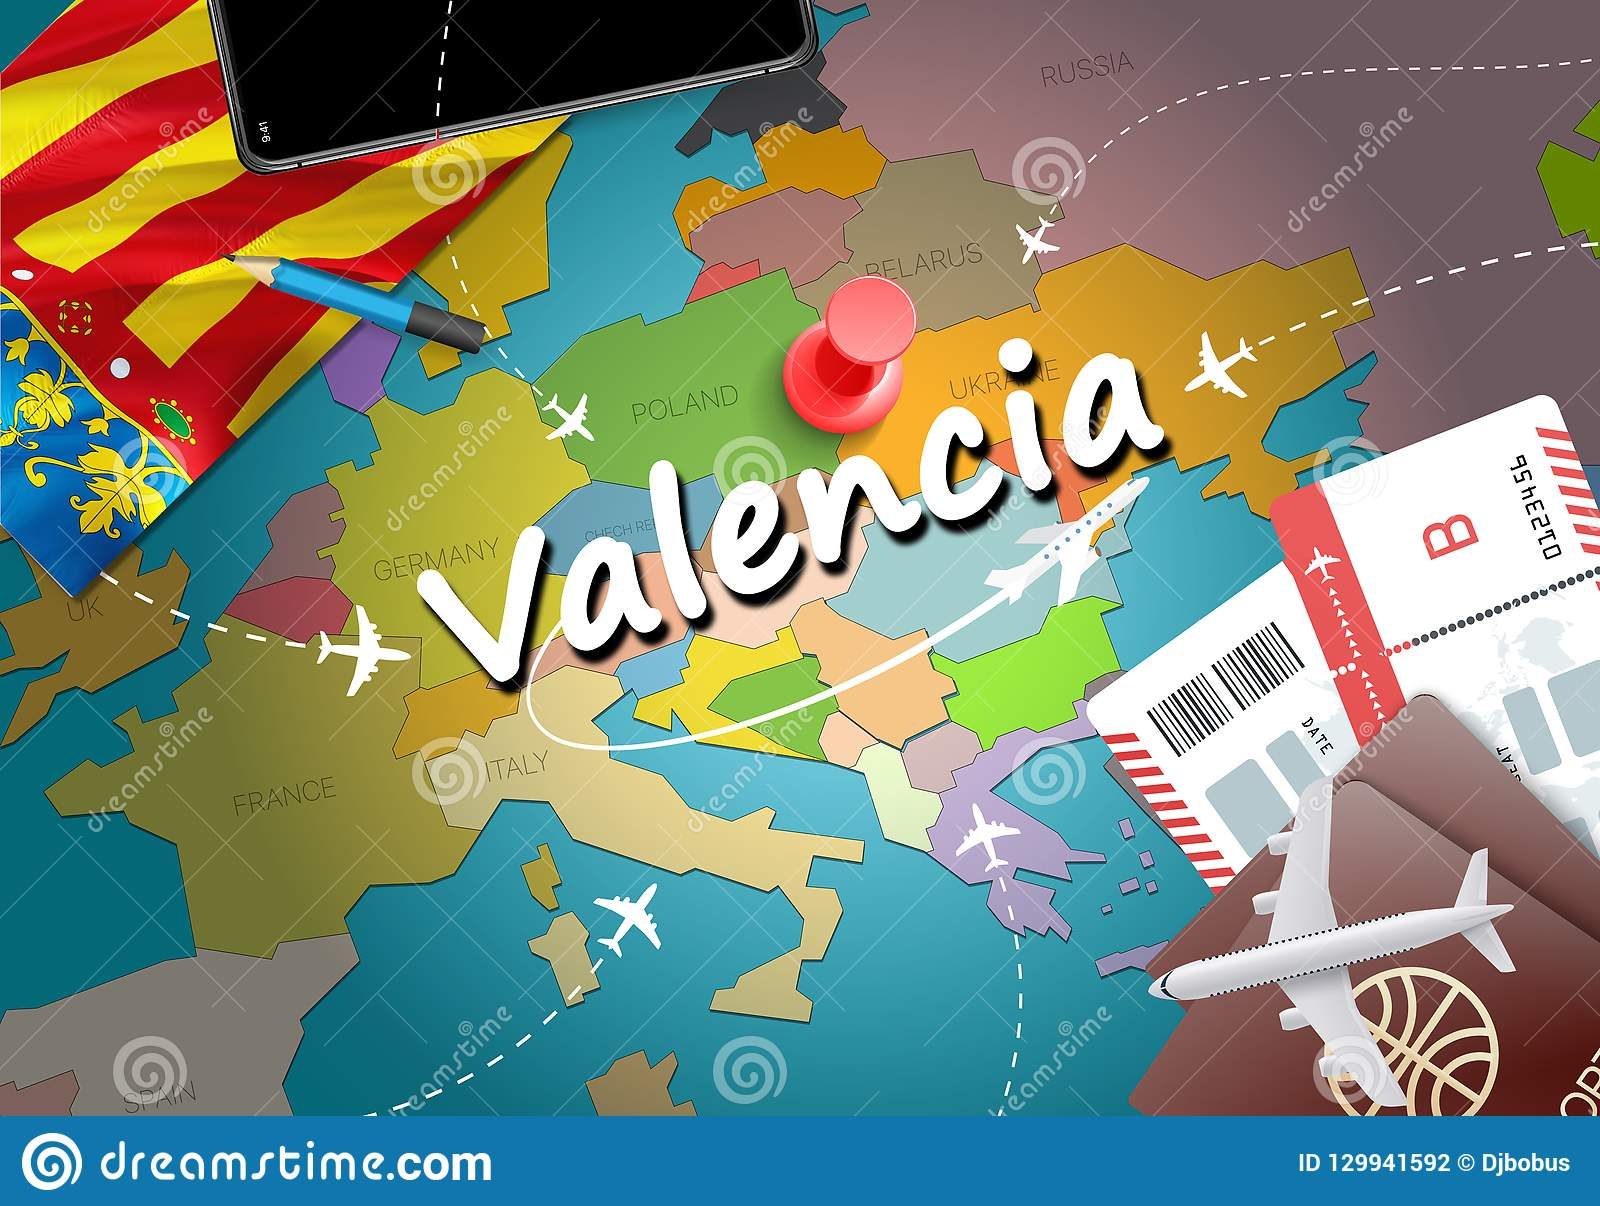 Valencia Map Of Spain.Valencia Travel Concept Map Background With Planes Tickets Visit